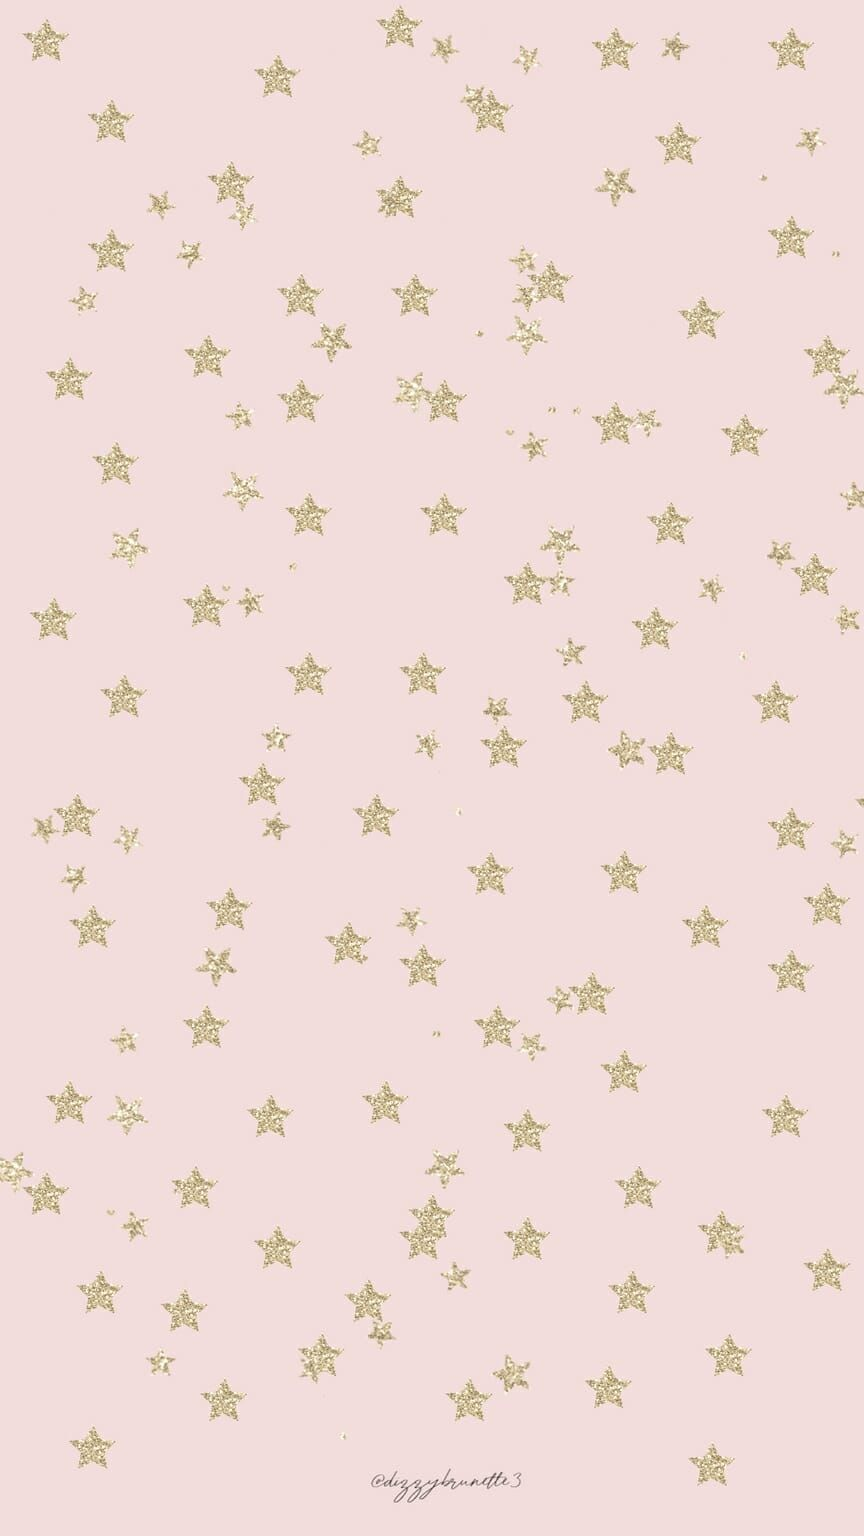 45 Free Stunning Christmas Wallpaper Backgrounds For Iphone Christmaswallpaper Christmas Phone Wallpaper Pink Wallpaper Iphone Christmas Wallpaper Backgrounds